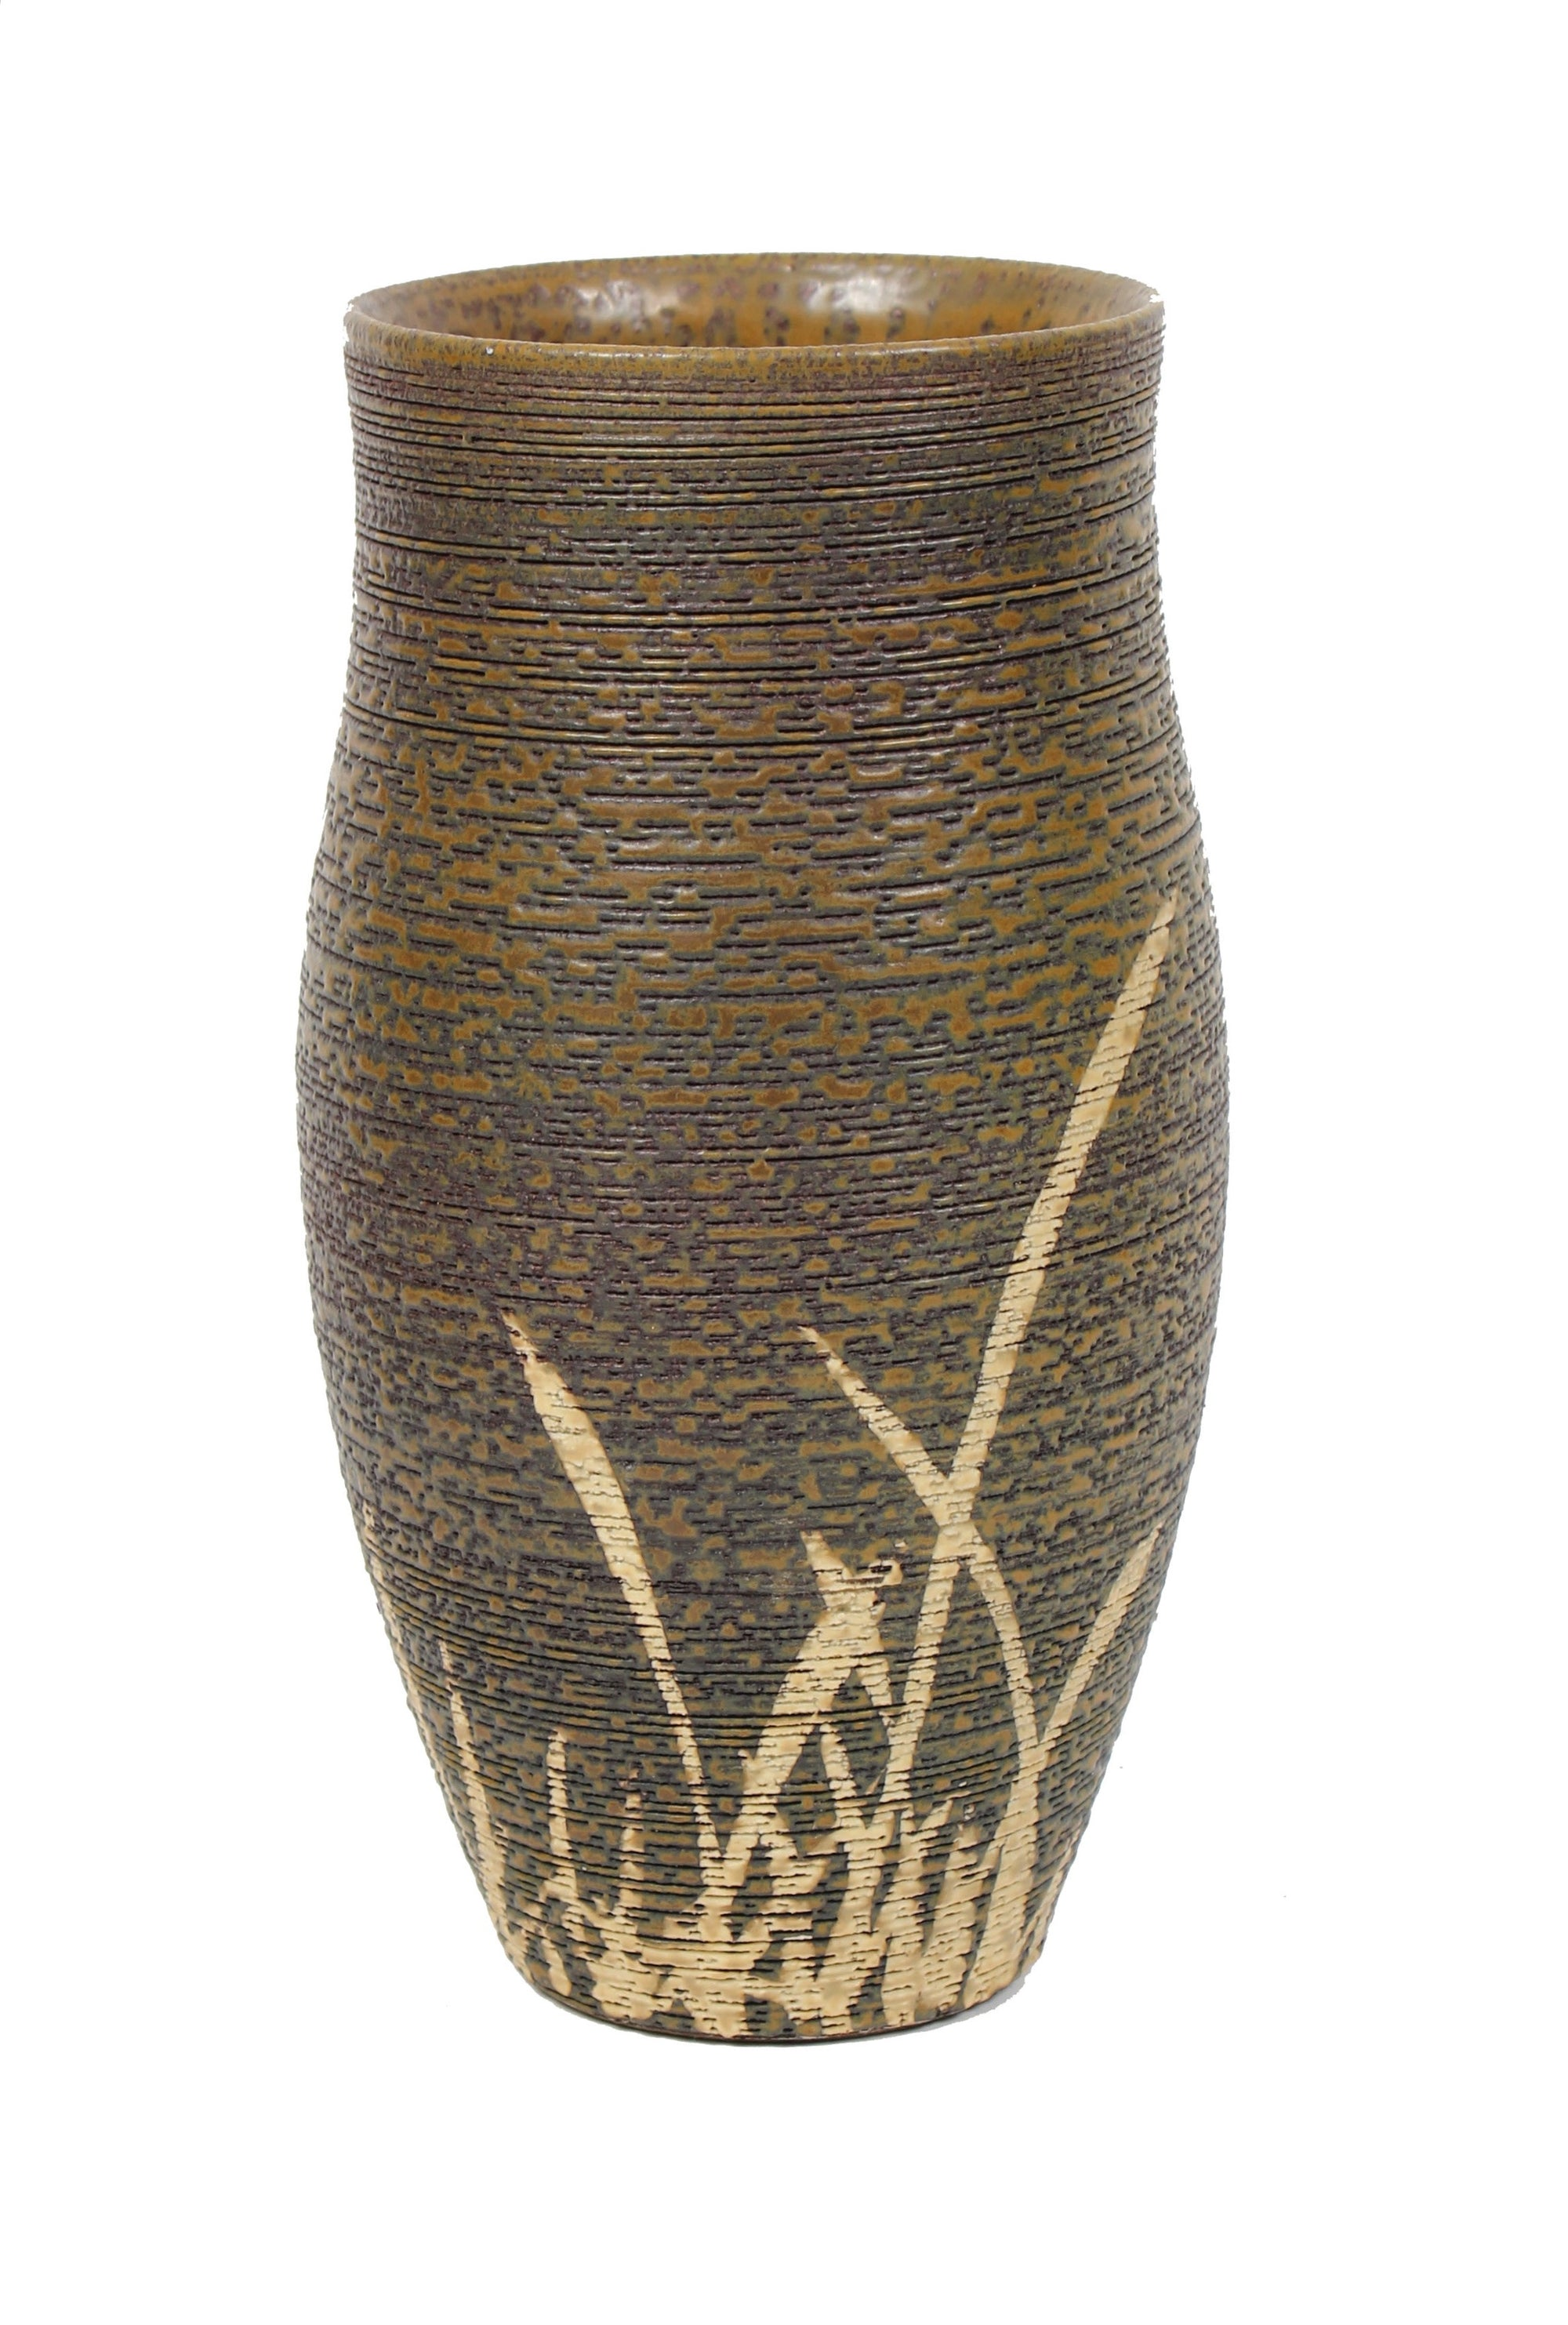 Brown Ceramic Vessel With Gray Texture And Cream Accent Lines <br><br>#98543